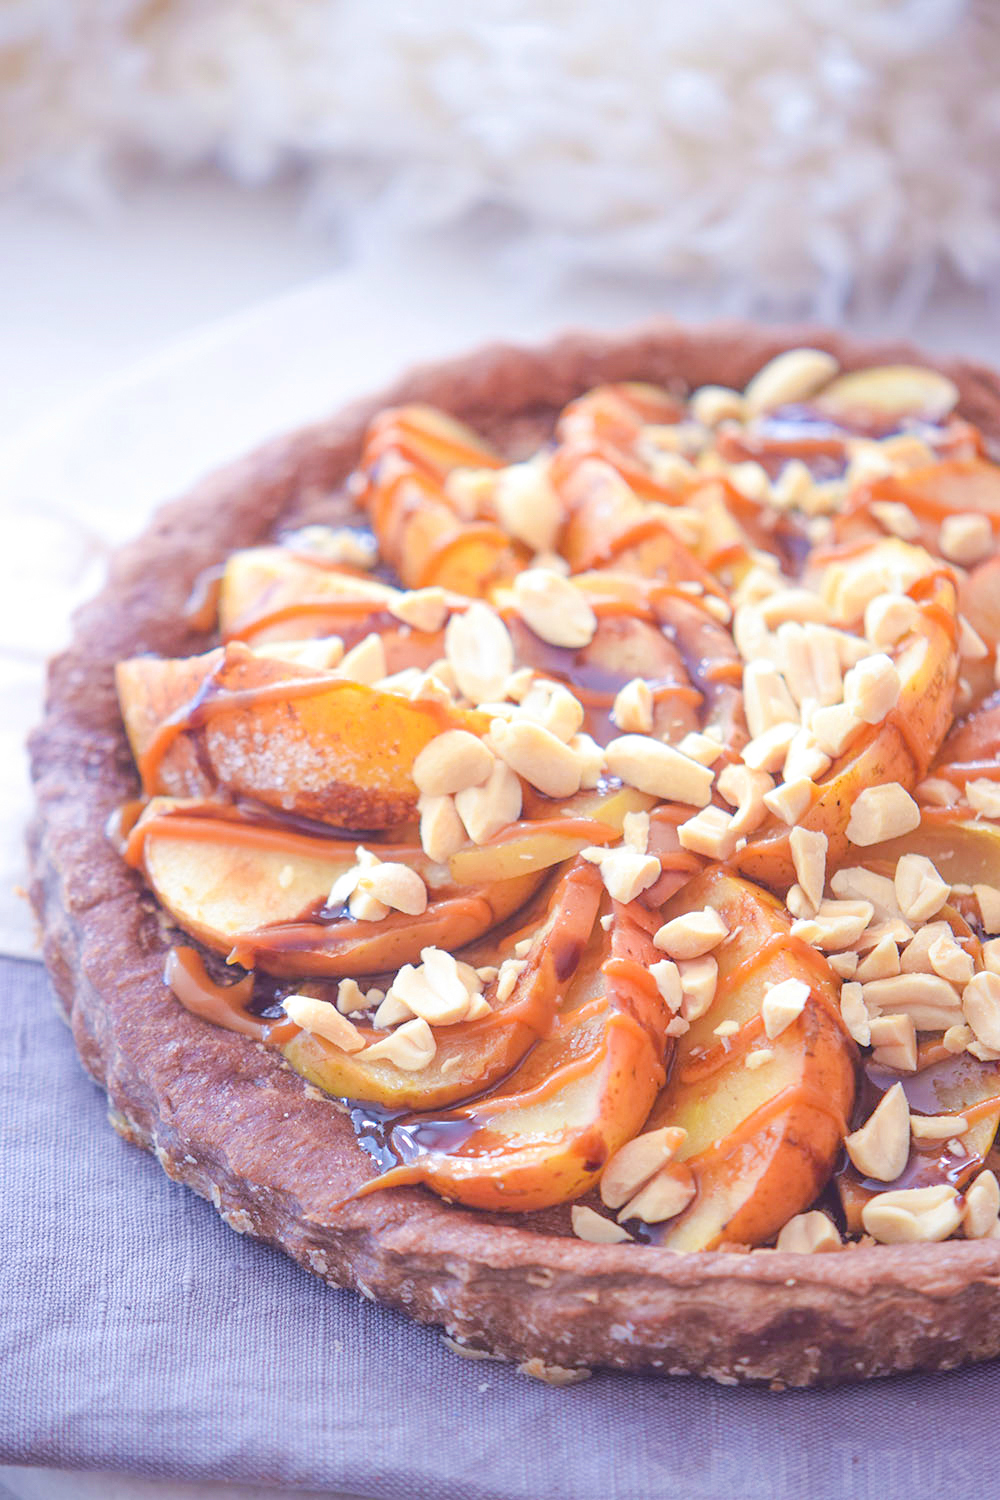 The finished Caramel Delight Apple Pie with a combination of caramel apples and topped with sliced almonds and drizzled caramel